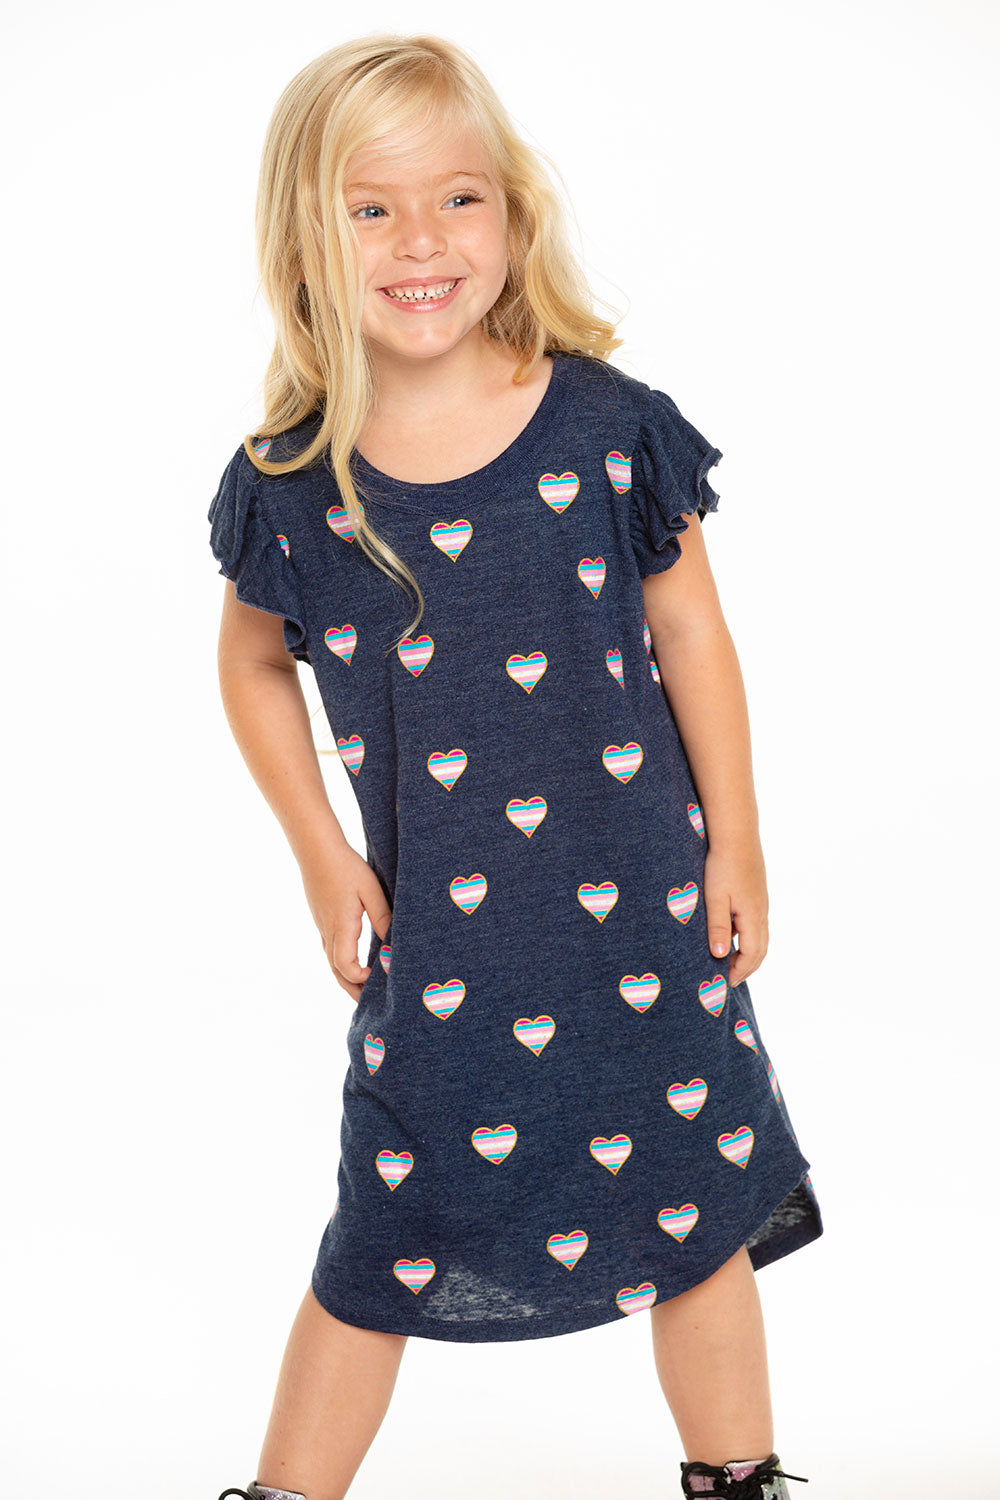 Beach Hearts Dress GIRLS chaserbrand4.myshopify.com